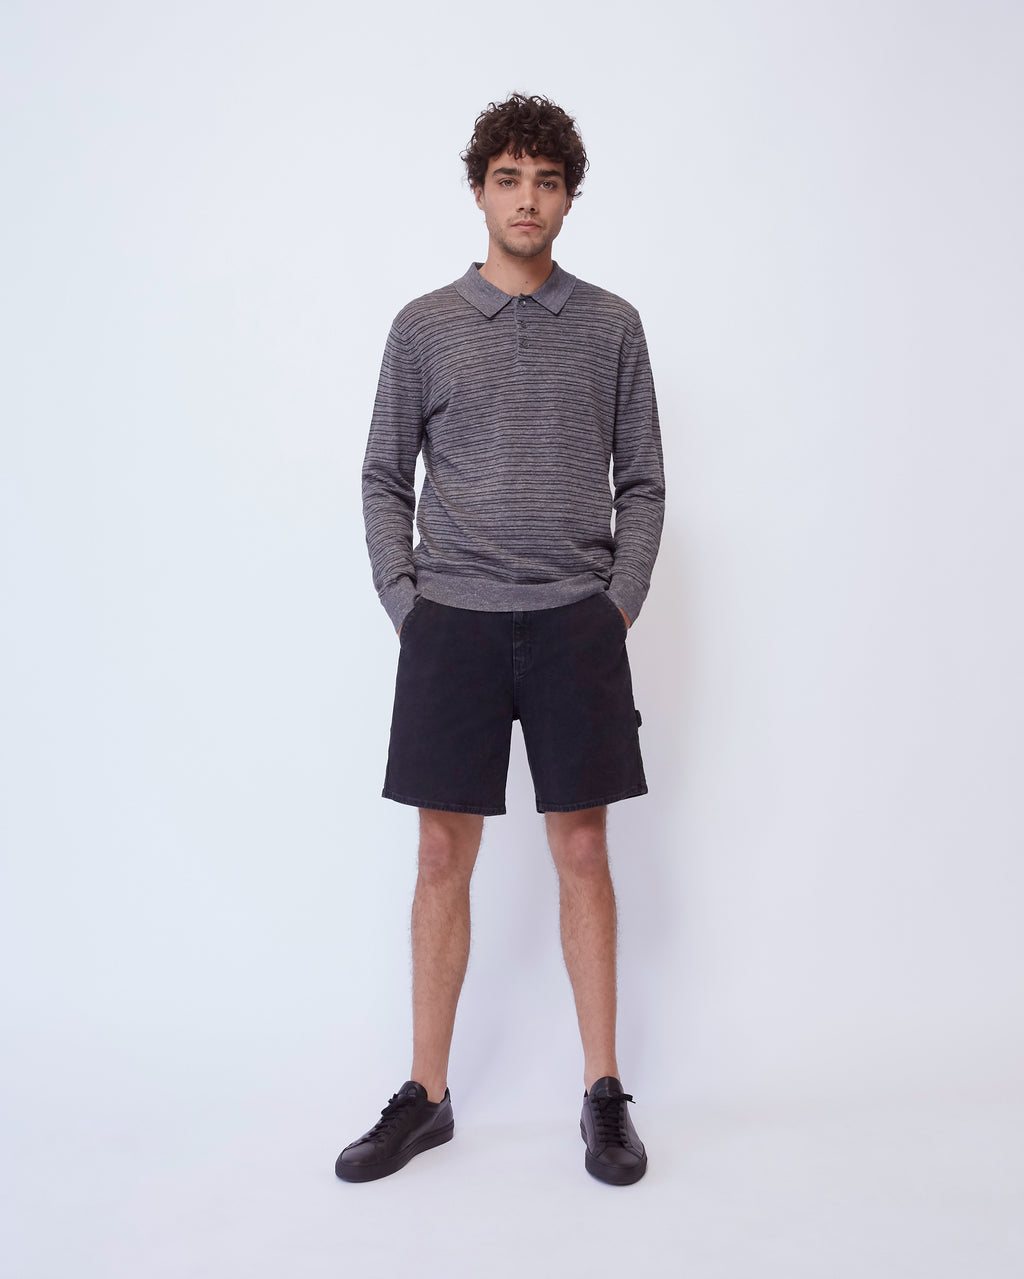 The Sarasota Sweater in Charcoal